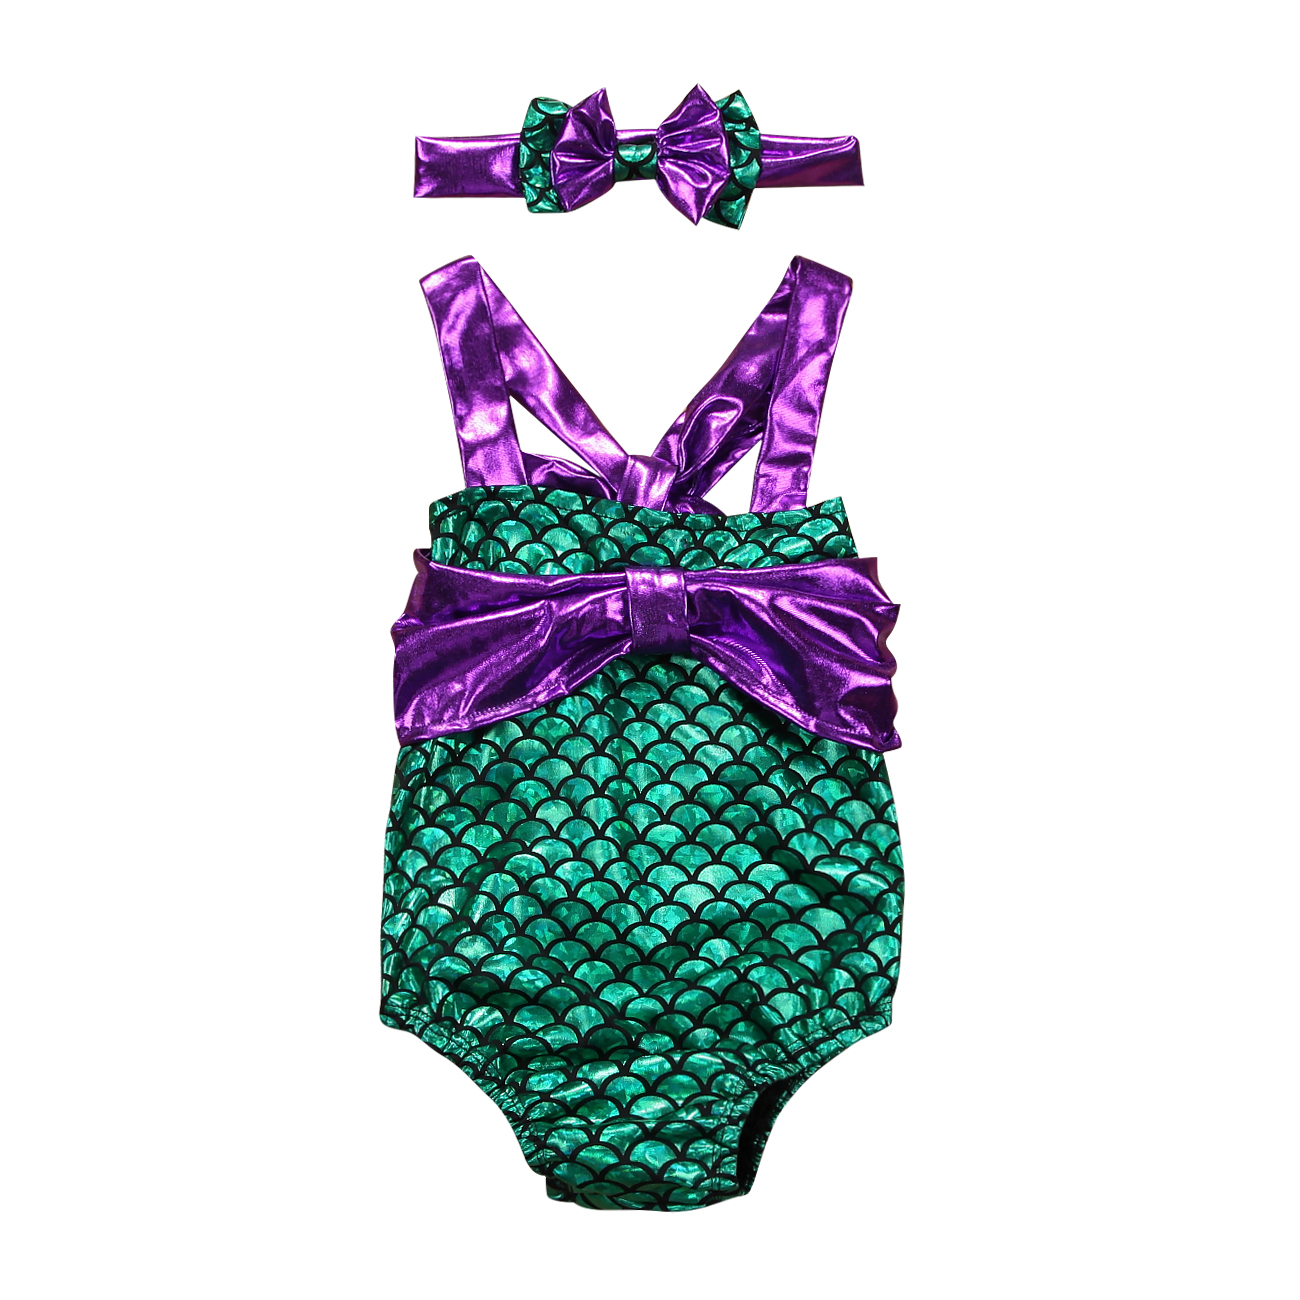 Luggage & Bags Enthusiastic Pudcoco 2pcs Kids Baby Girls Swimwear Summer Mermaid Swimsuit Swimming Headband Outfits Ste 0-24 Months Helen115